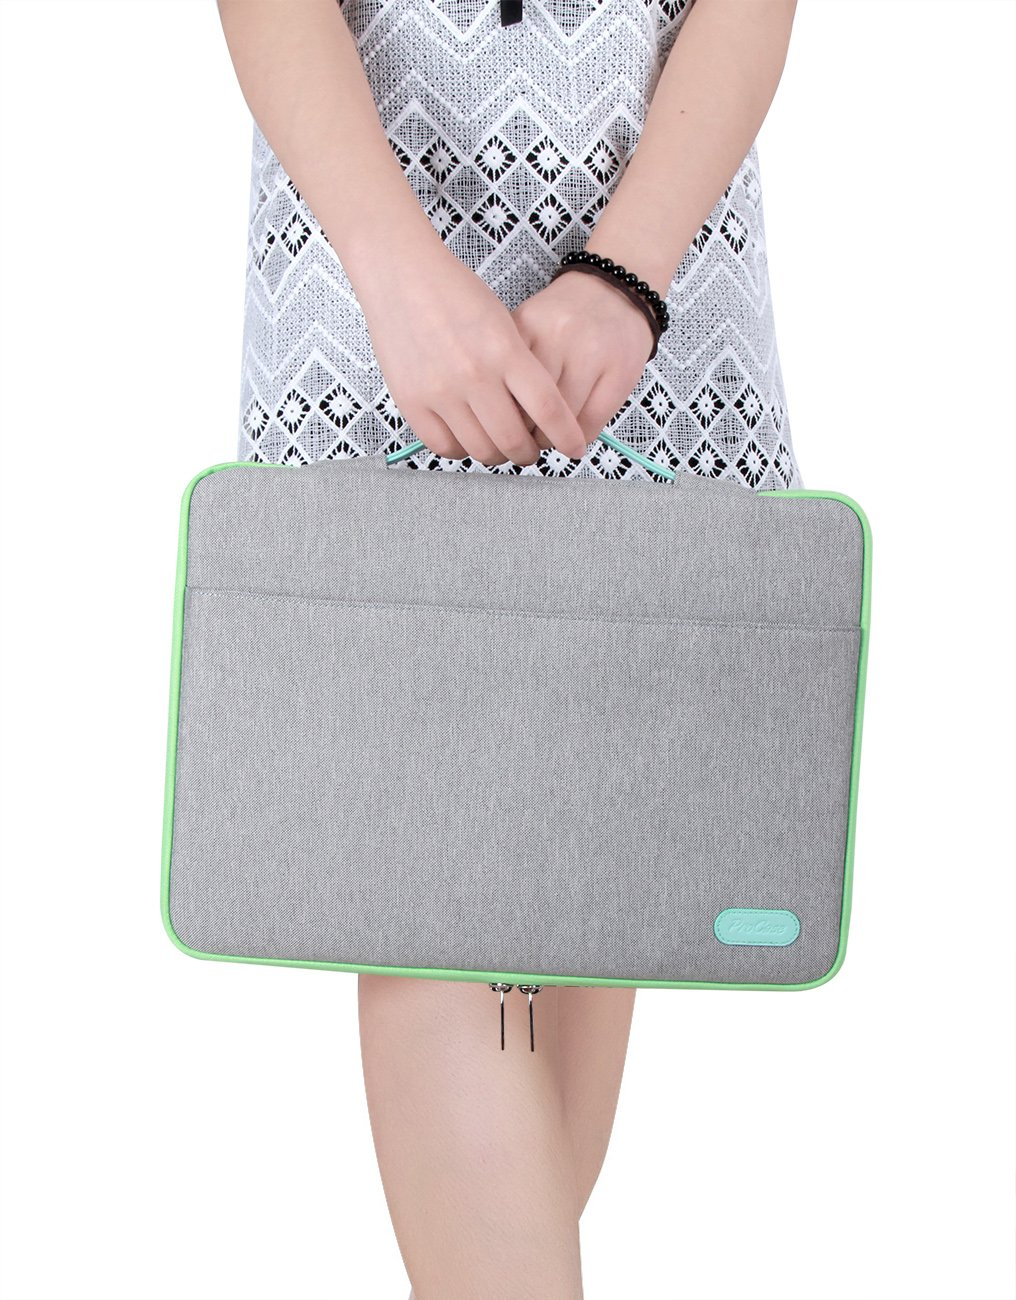 ProCase 14-15.6 Inch Laptop Sleeve Case Protective Bag, Ultrabook Notebook Carrying Case Handbag for 14'' 15'' Samsung Sony Asus Acer Lenovo Dell HP Toshiba Chromebook Computers -Light Grey by ProCase (Image #8)